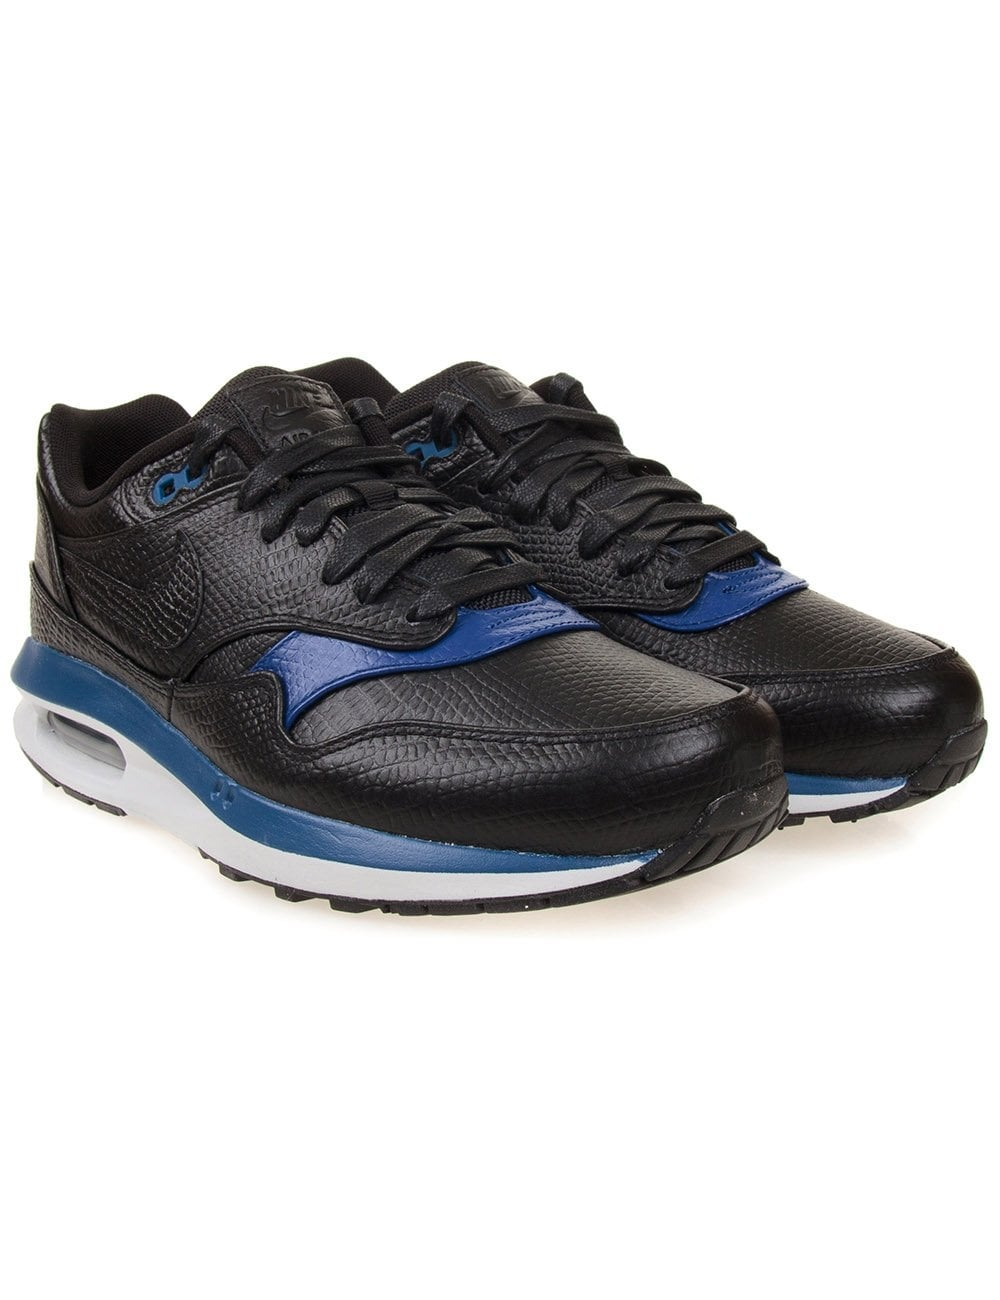 nike air max 1 lunar deluxe black footwear from fat. Black Bedroom Furniture Sets. Home Design Ideas